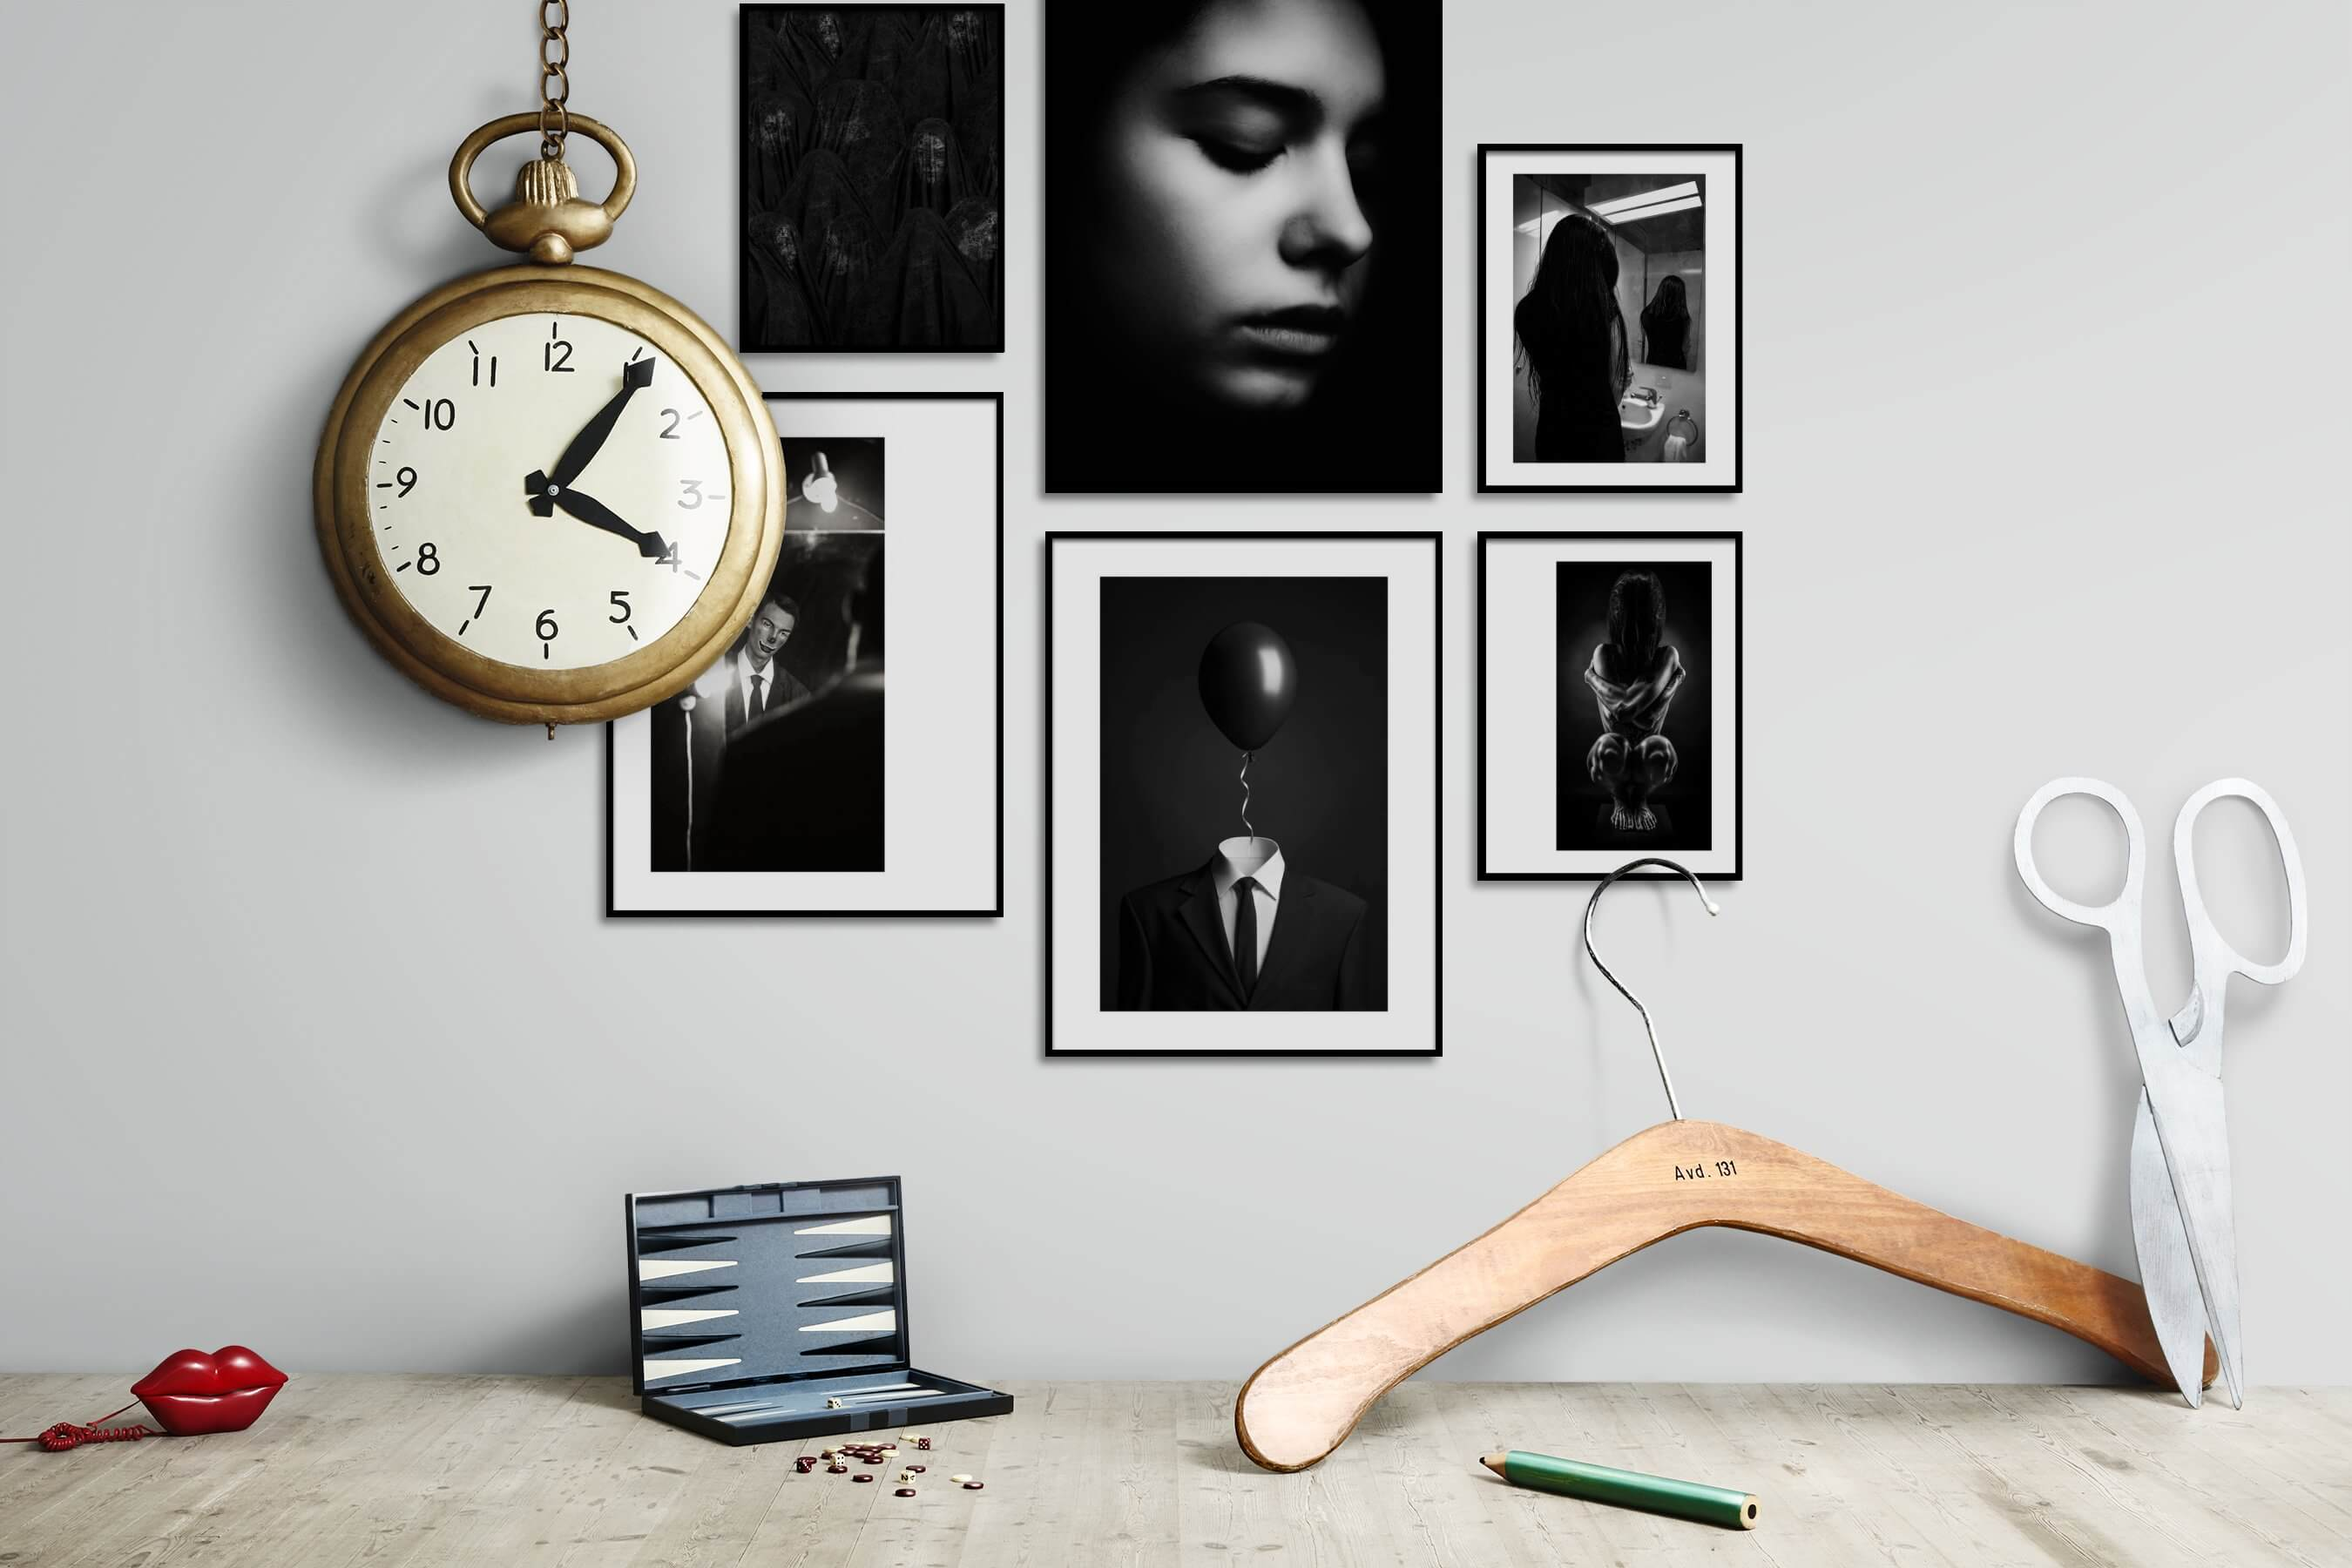 Gallery wall idea with six framed pictures arranged on a wall depicting Artsy, Black & White, For the Moderate, Fashion & Beauty, and Dark Tones